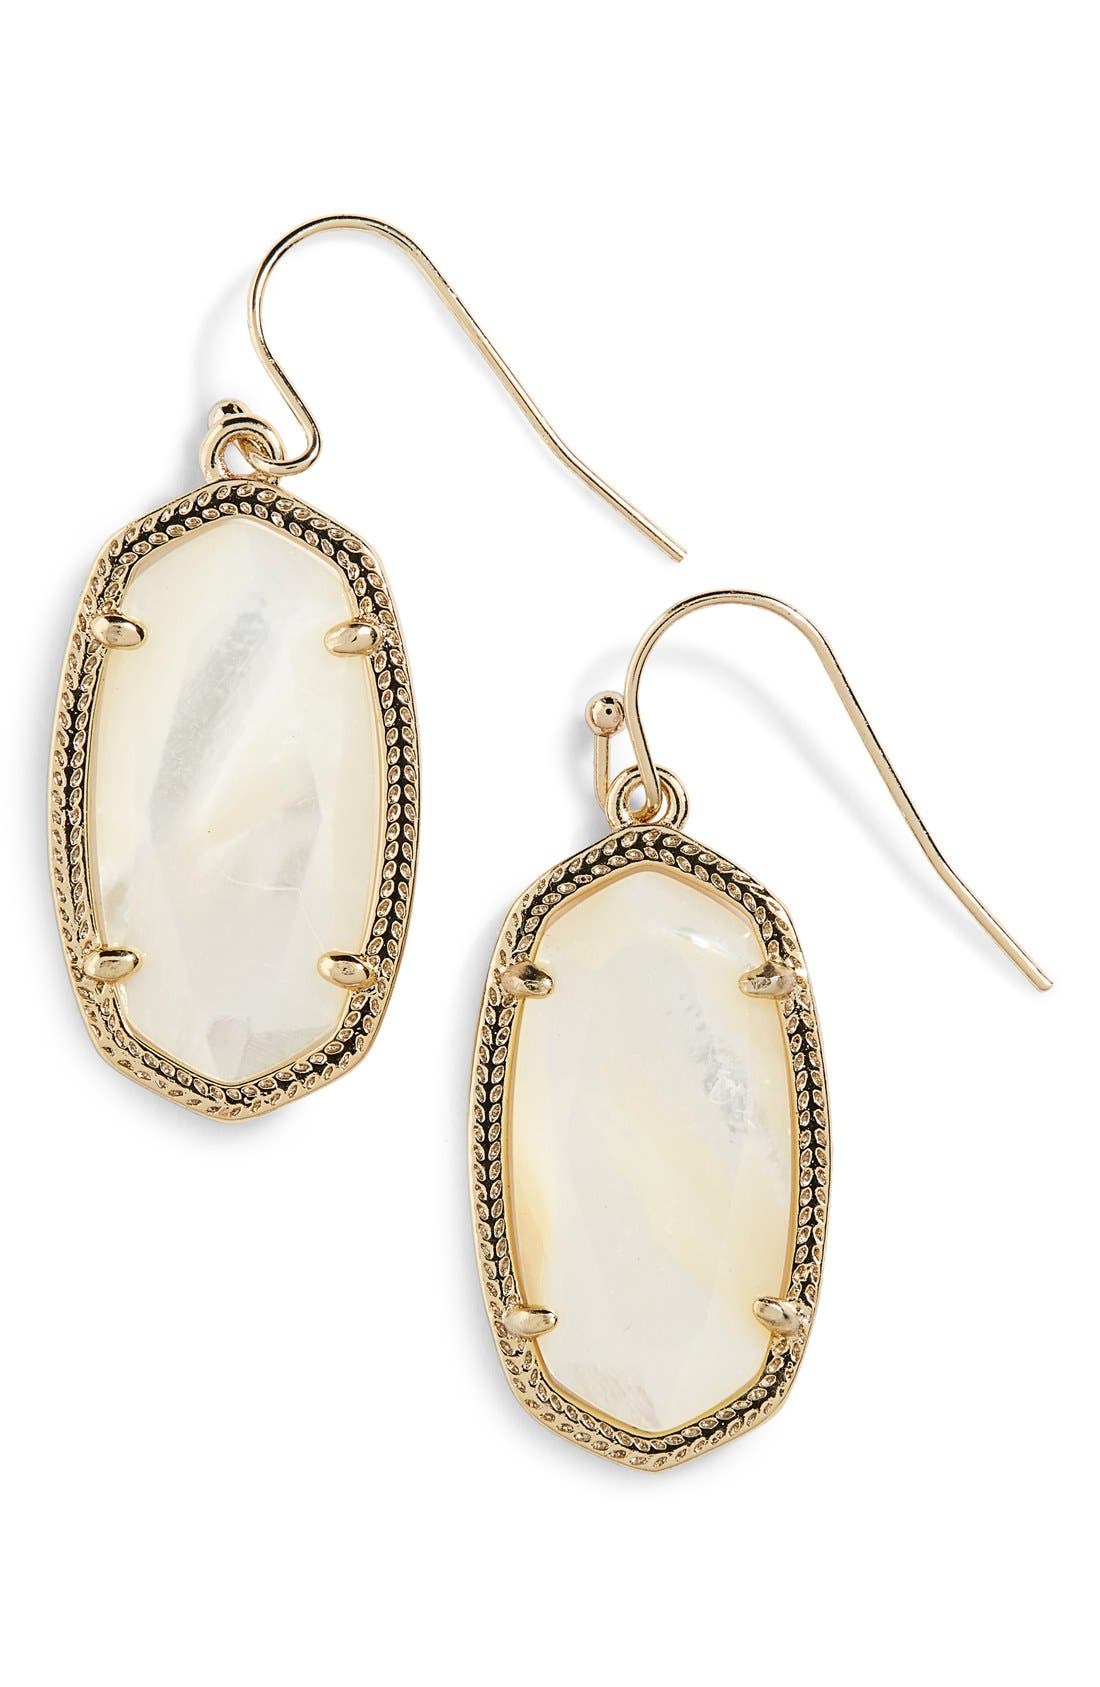 Kendra Scott 'Dani' Drop Earrings